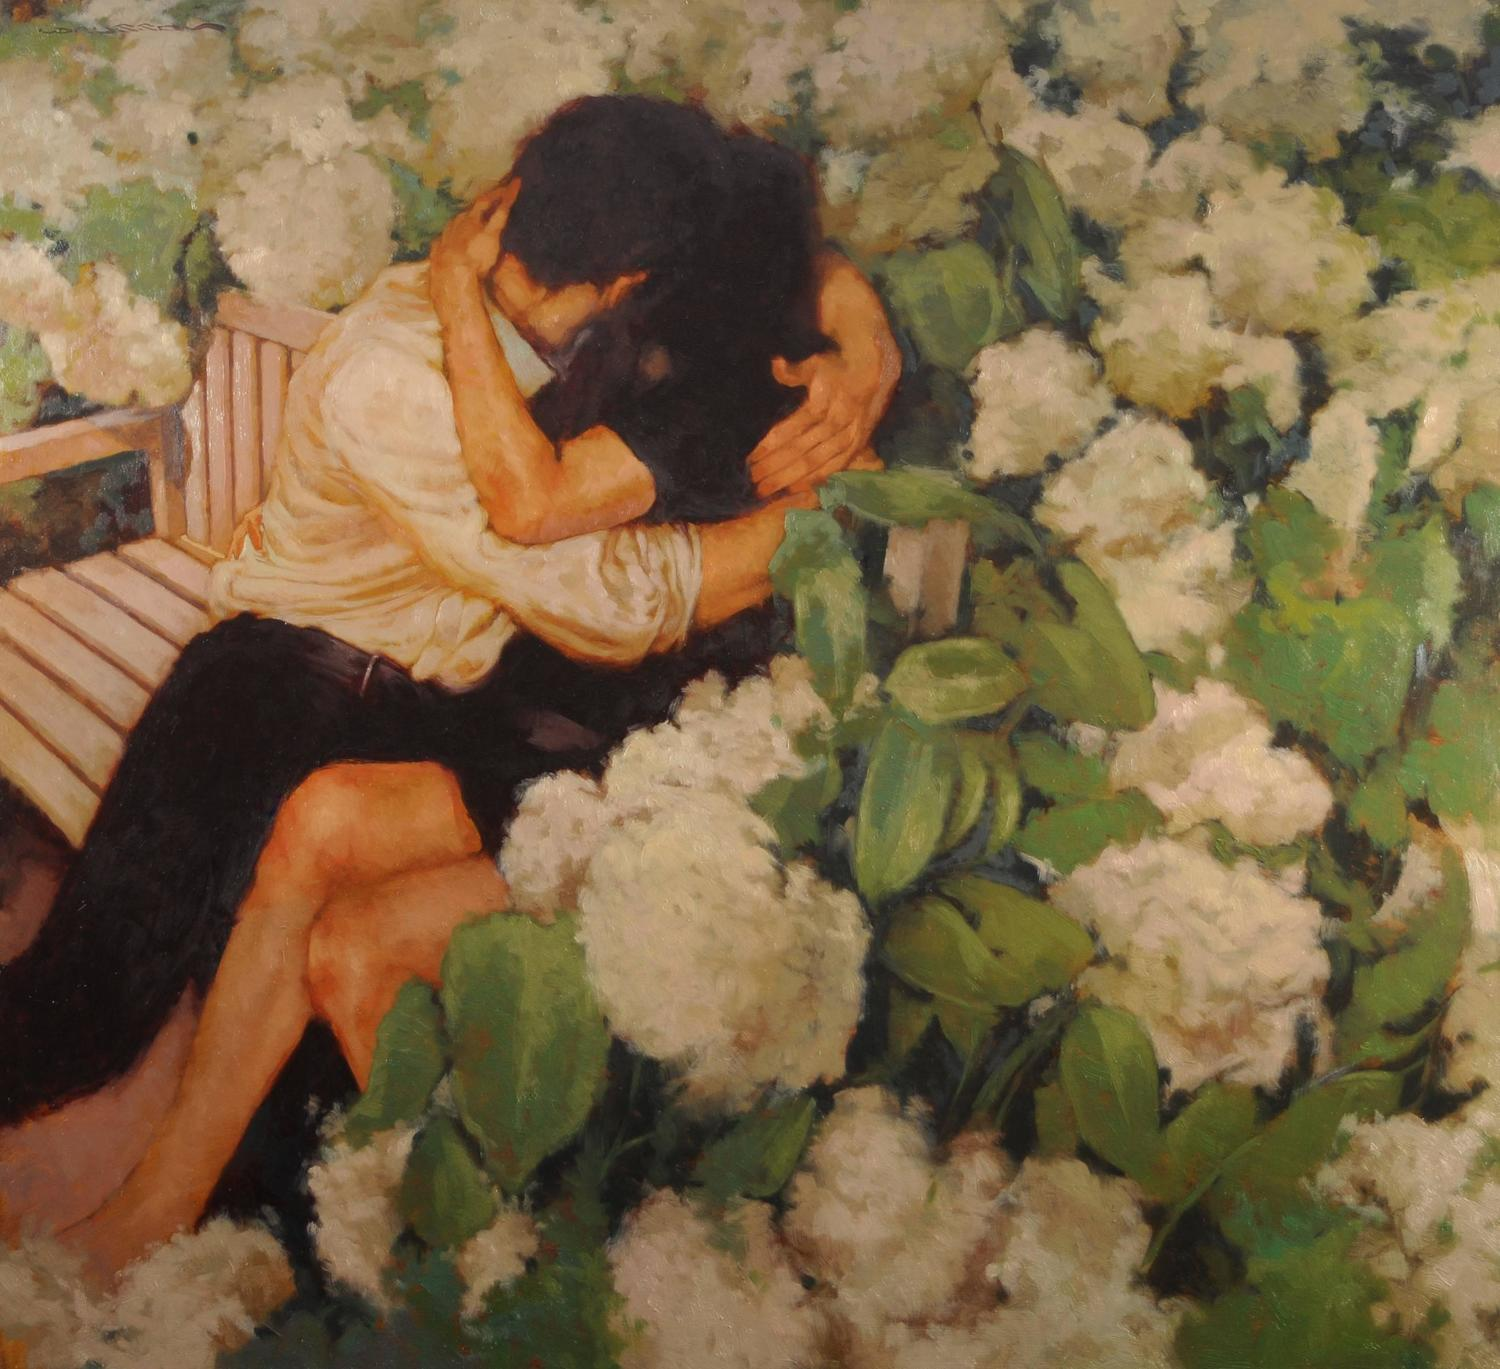 joseph-lorusso-lovers_in_the_garden_24x26_oil_7500_lorusso_z